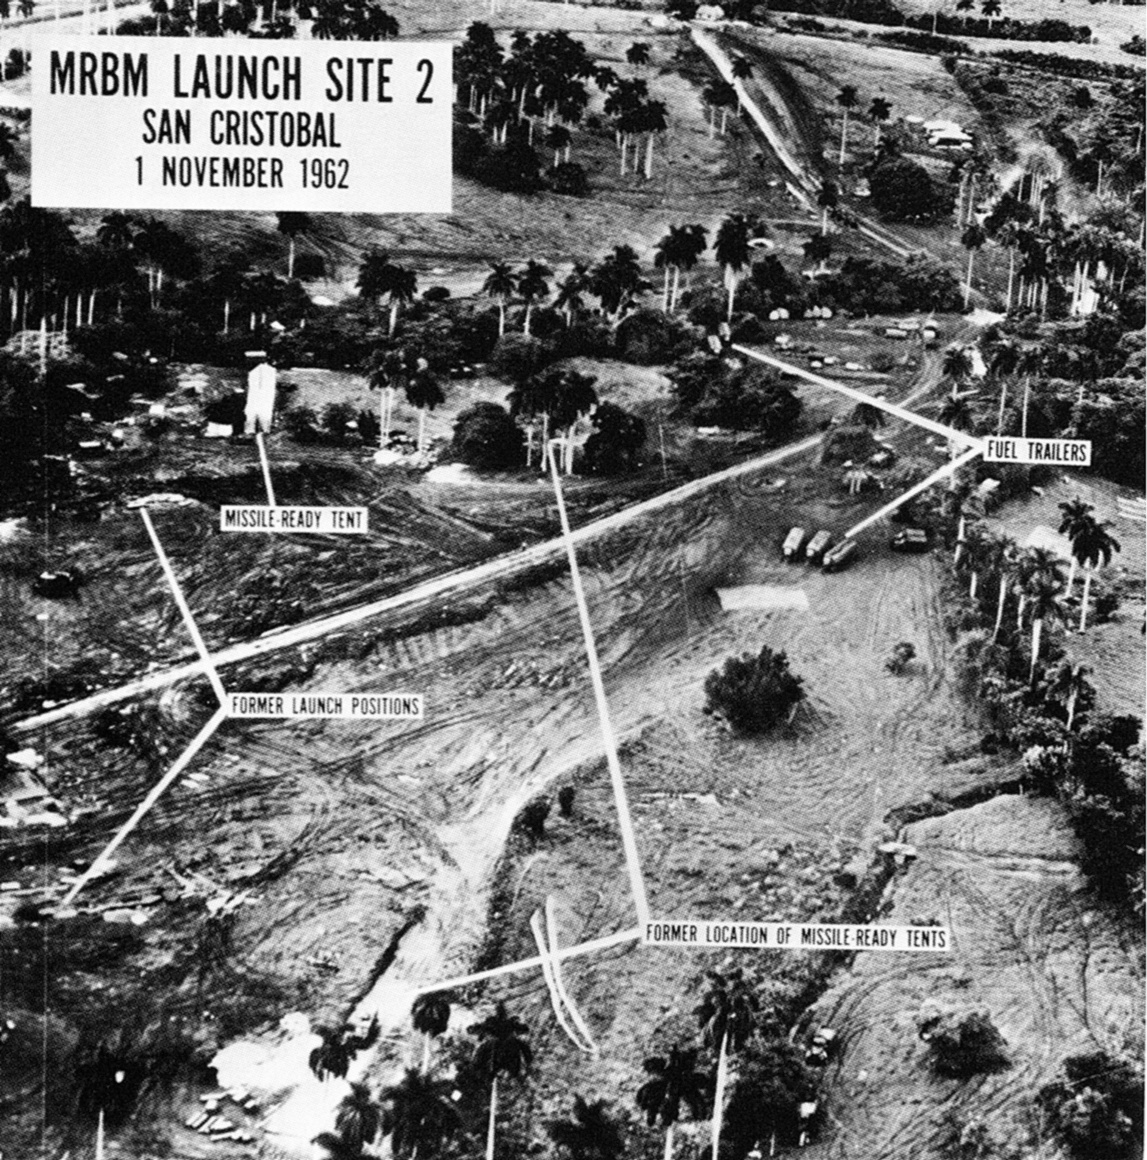 the cuban missile crisis the day the The cuban missile crisis was a confrontation between the us and ussr concerning the latter's deployment of ballistic missiles in cuba and the former's deployment of ballistic missiles in turkey and italy the crisis, also called the october crisis of 1962 or the caribbean crisis, was one of the.